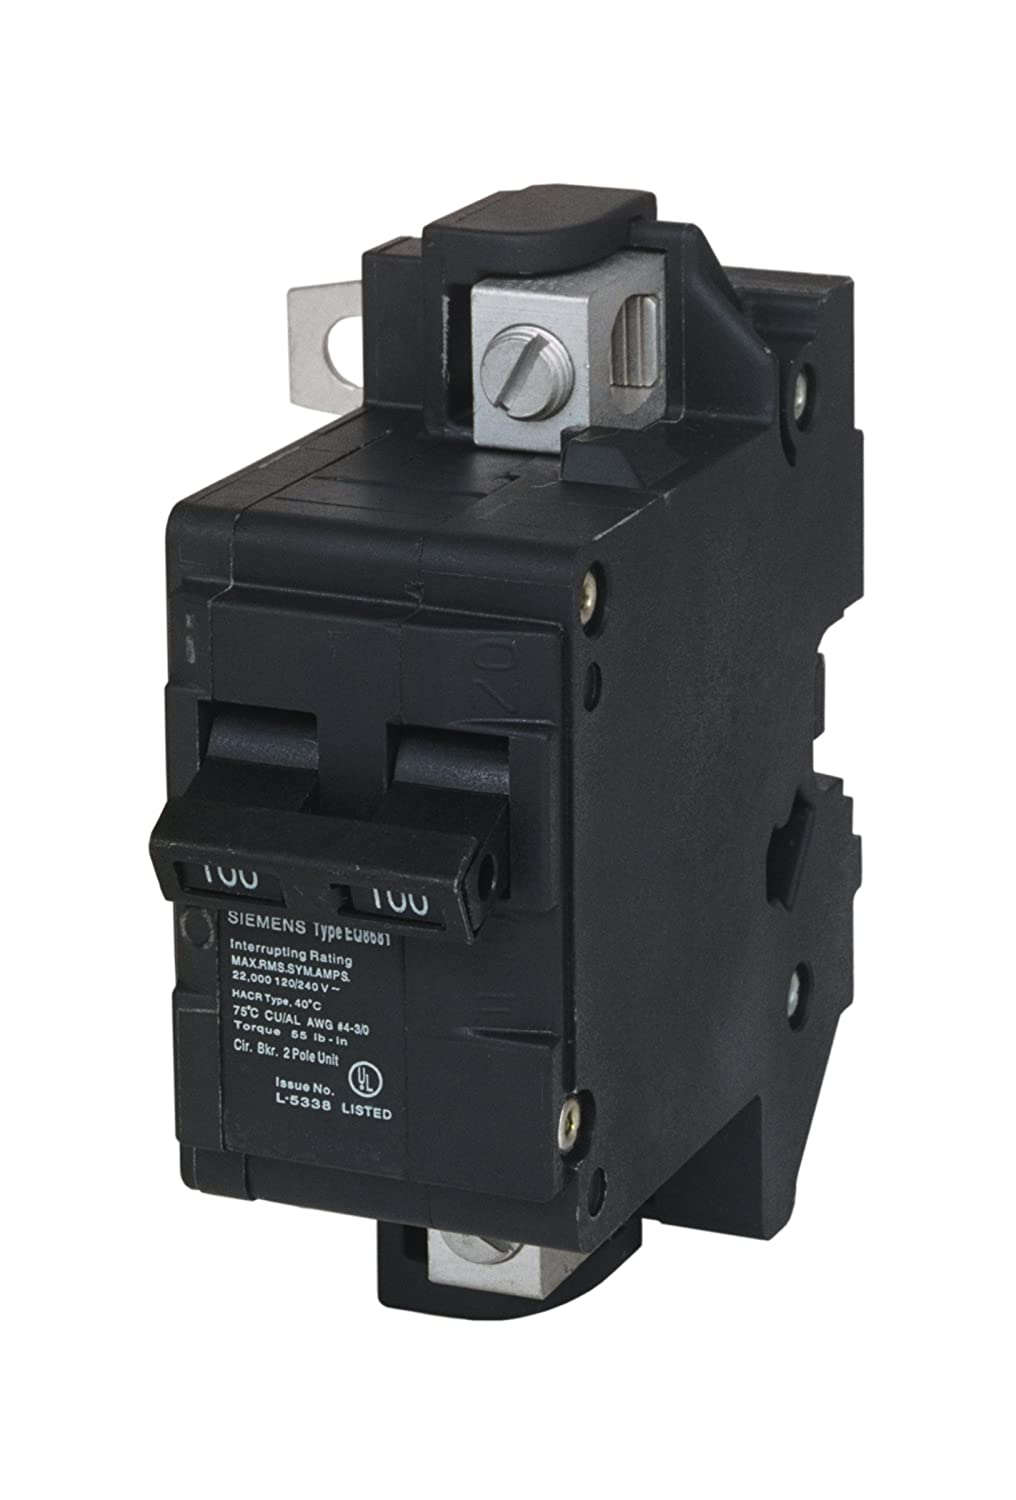 Murray MBK100M 100-Amp Main Circuit Breaker for Use in Rock Solid Type Load  Centers - Ground Fault Circuit Interrupters - Amazon.com